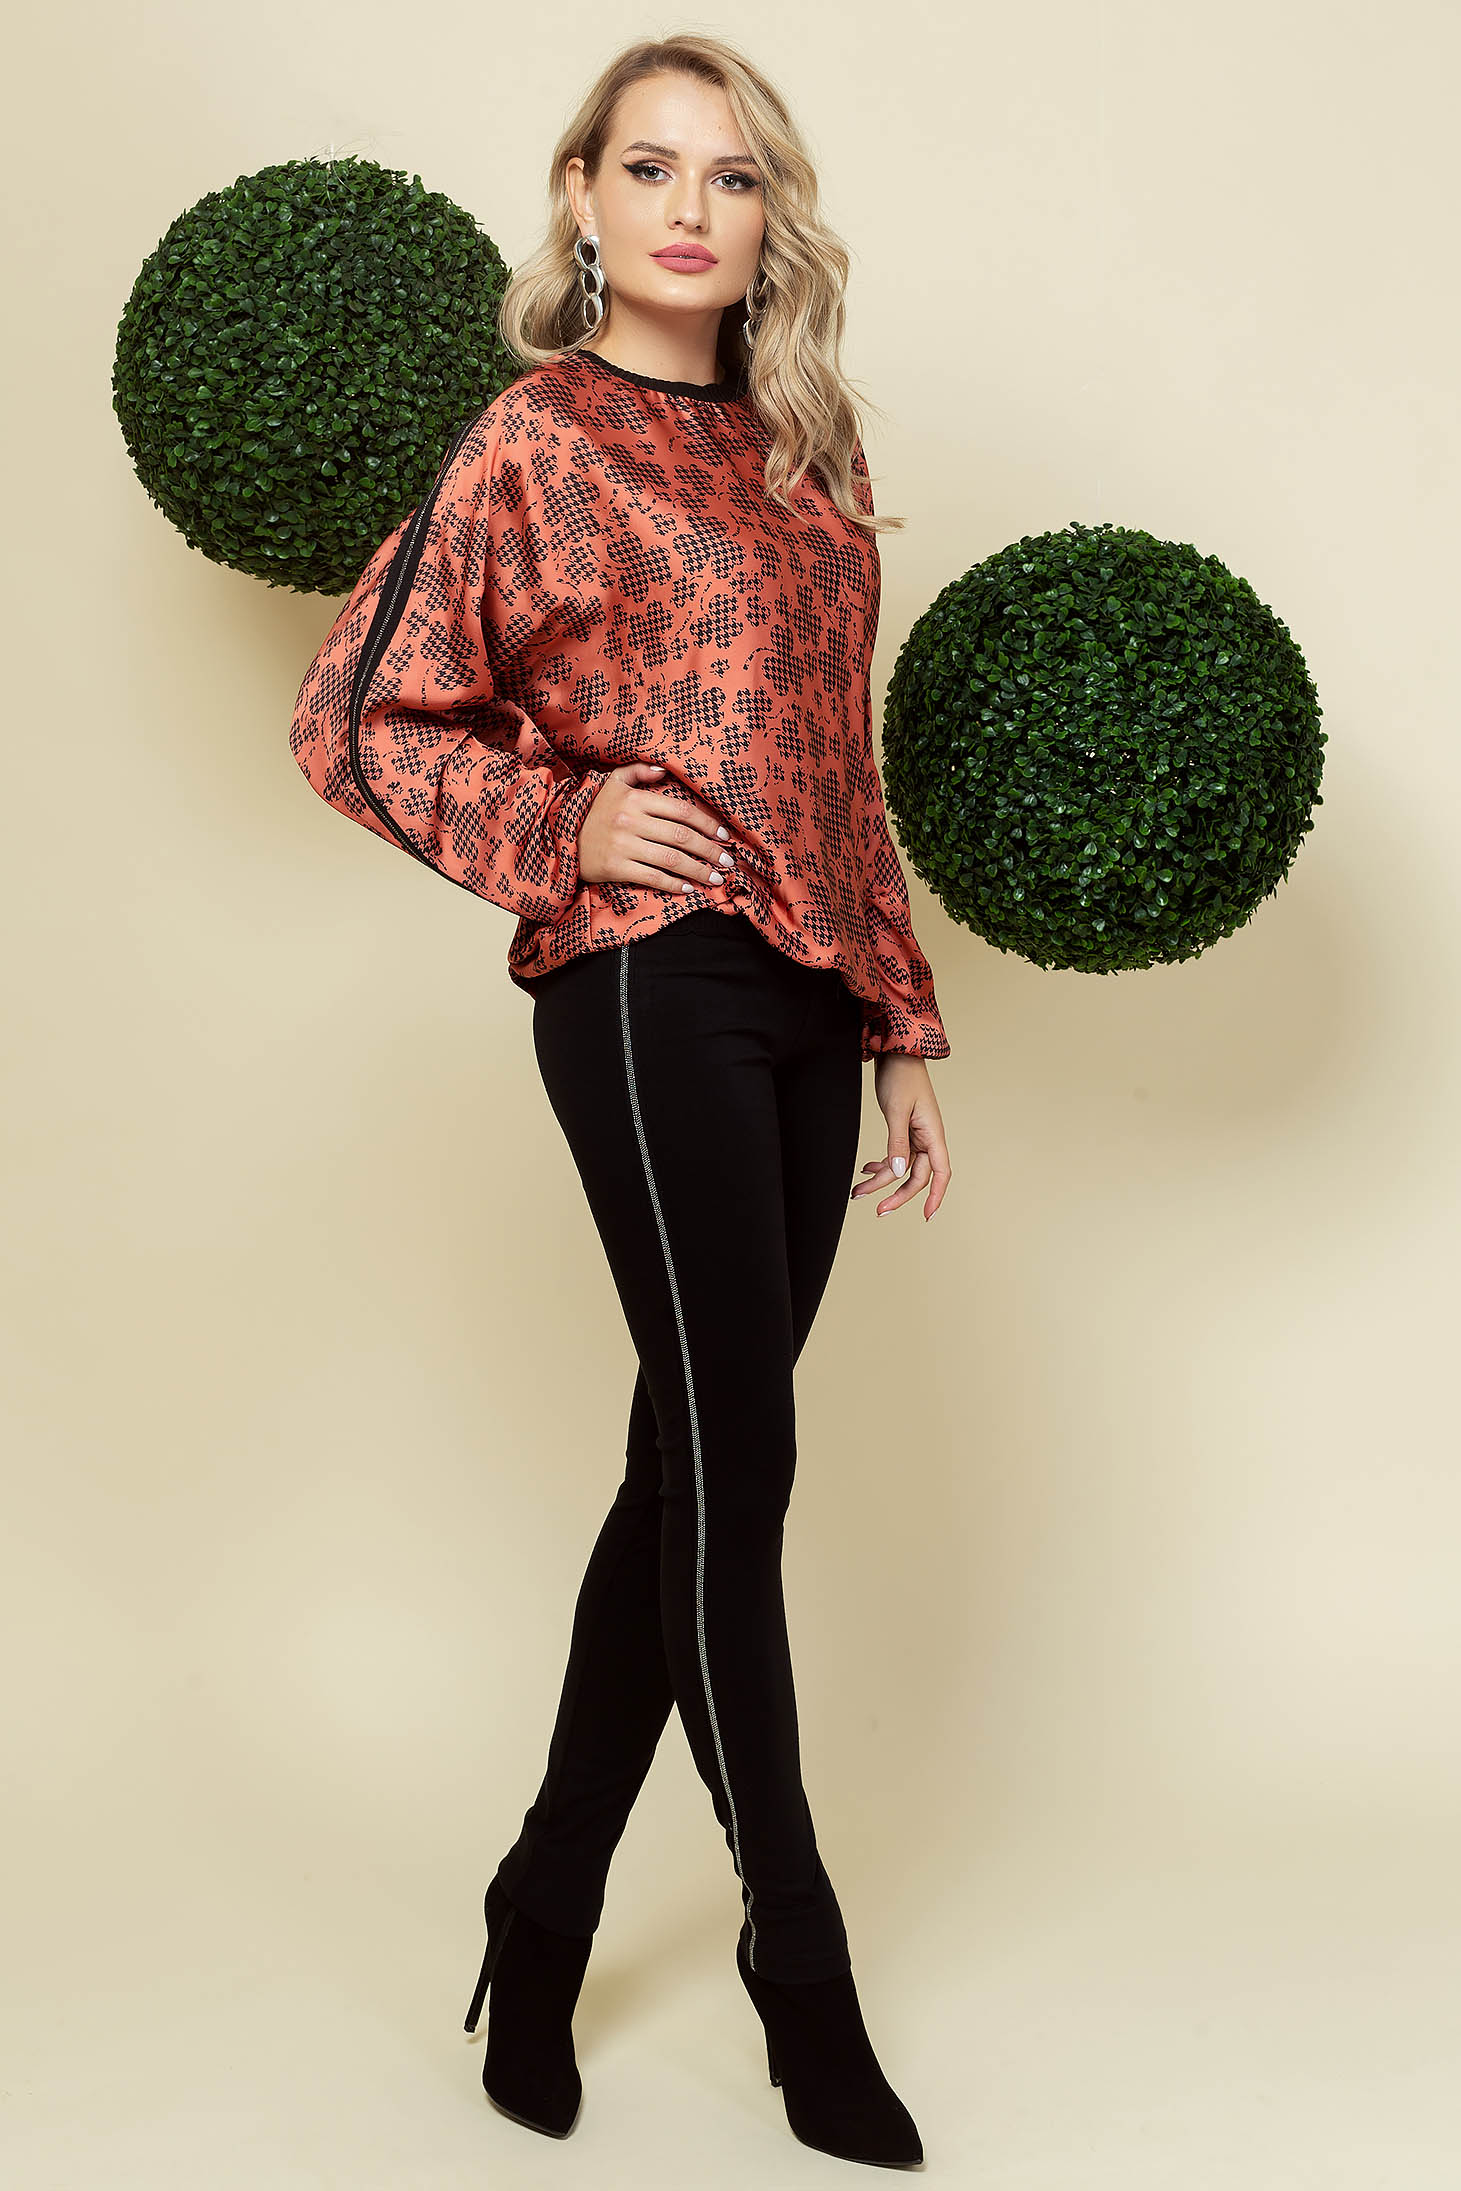 Black trousers office conical high waisted with small beads embellished details